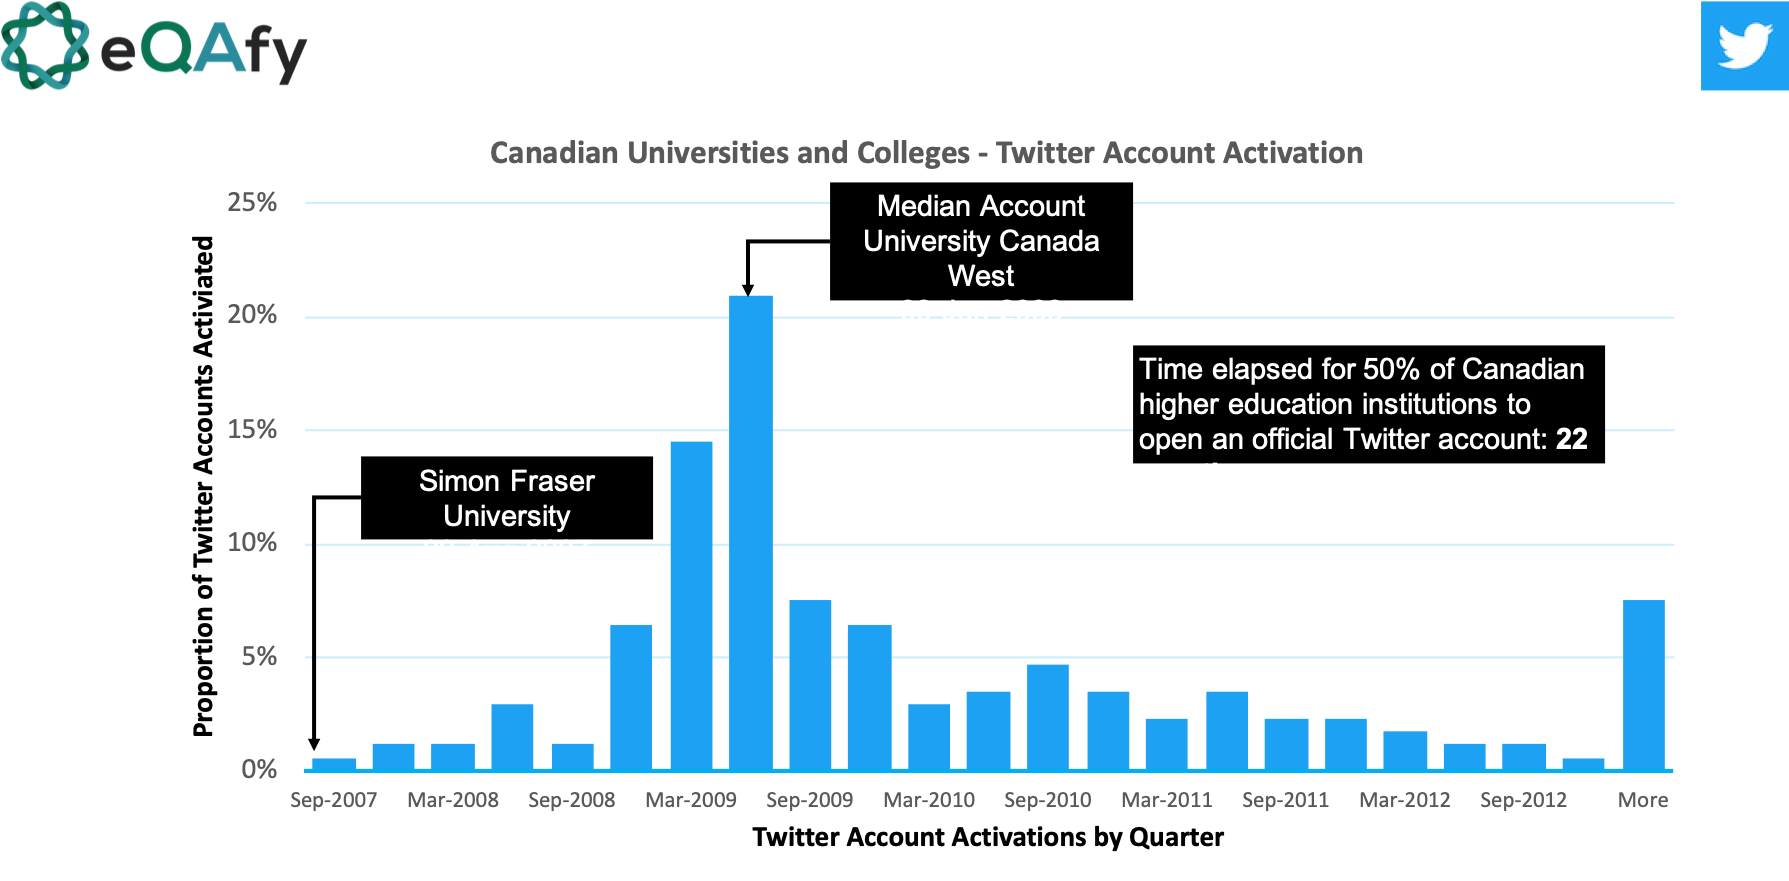 Dates of Twitter account activation for higher education/post-secondary institutions in Canada